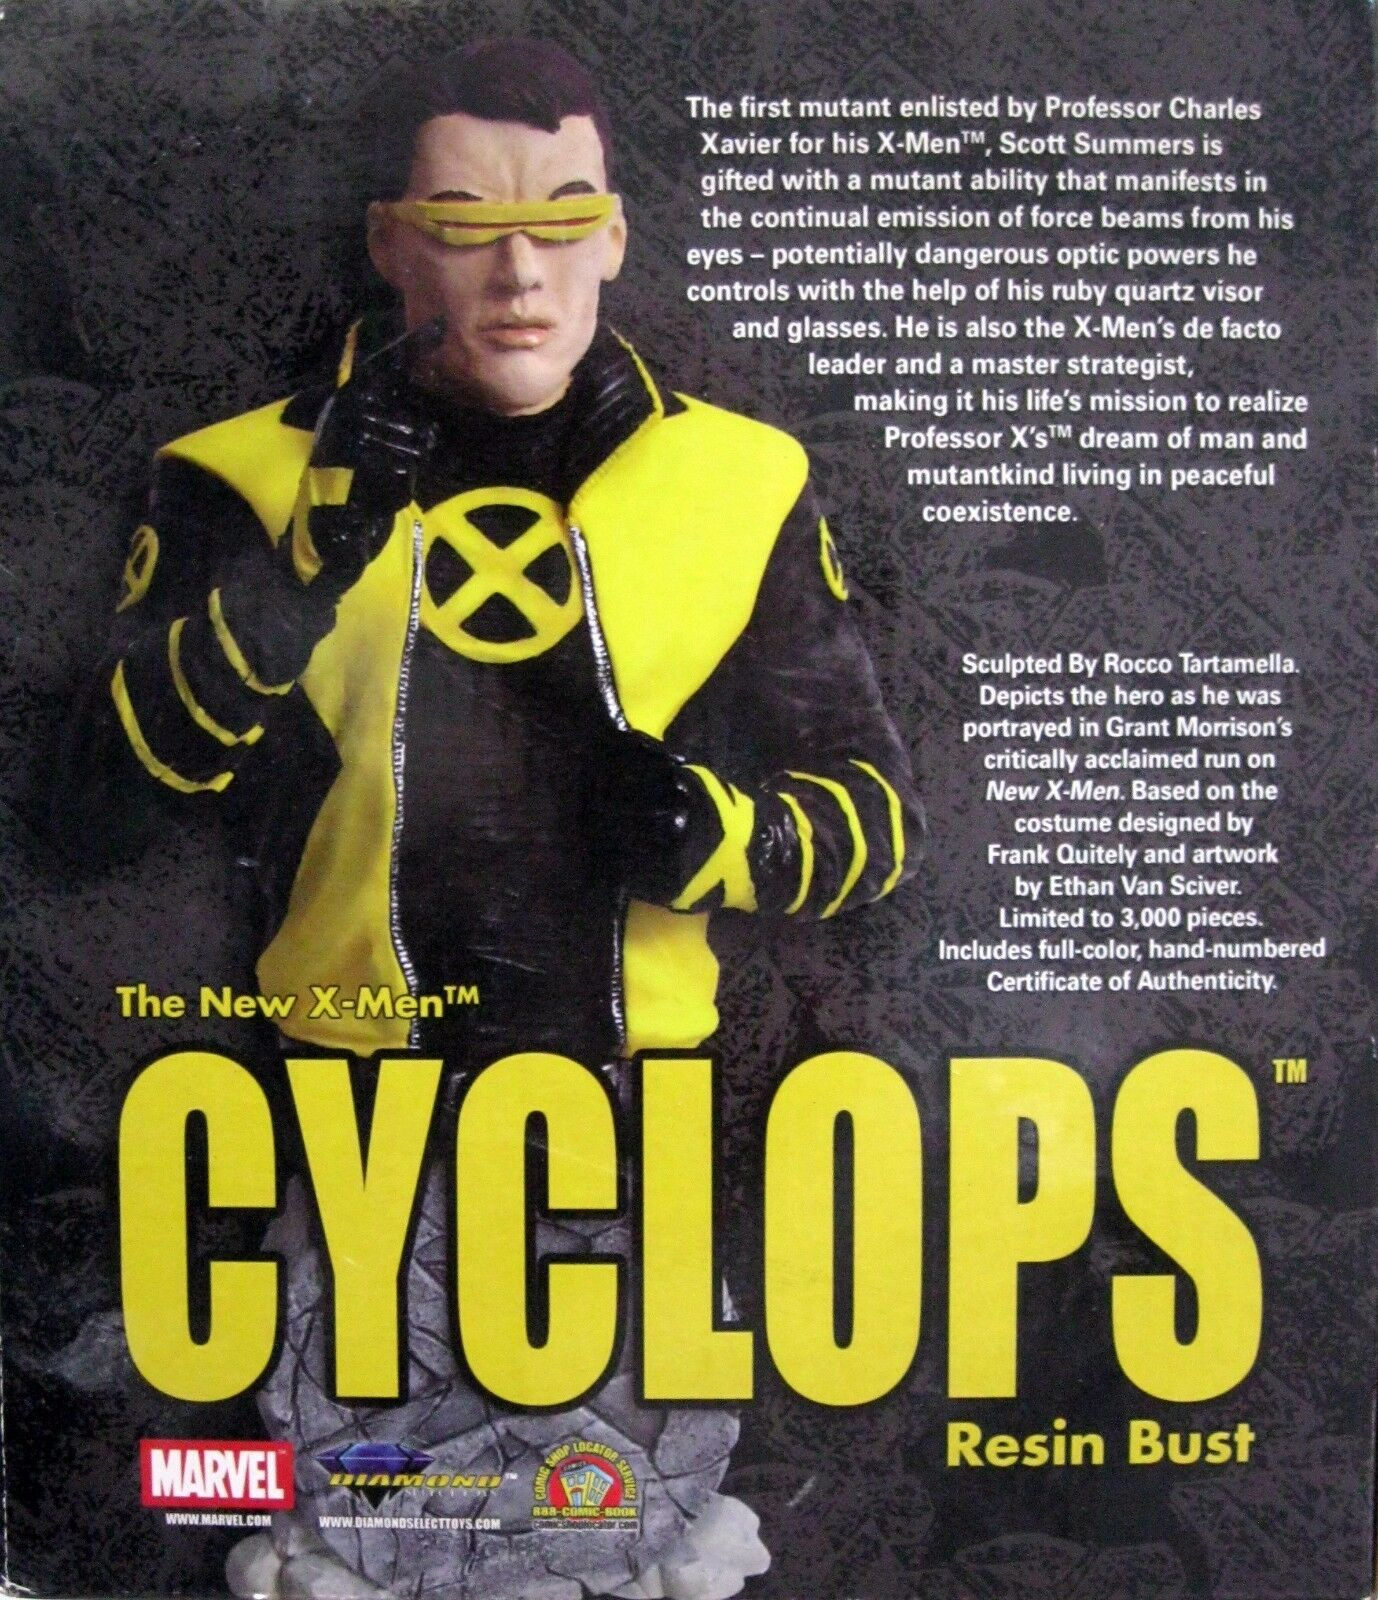 Bust CYCLOPS - Marvel Characters - - - X-Men - Ed. Limitata - Idea Regalo  5644a0